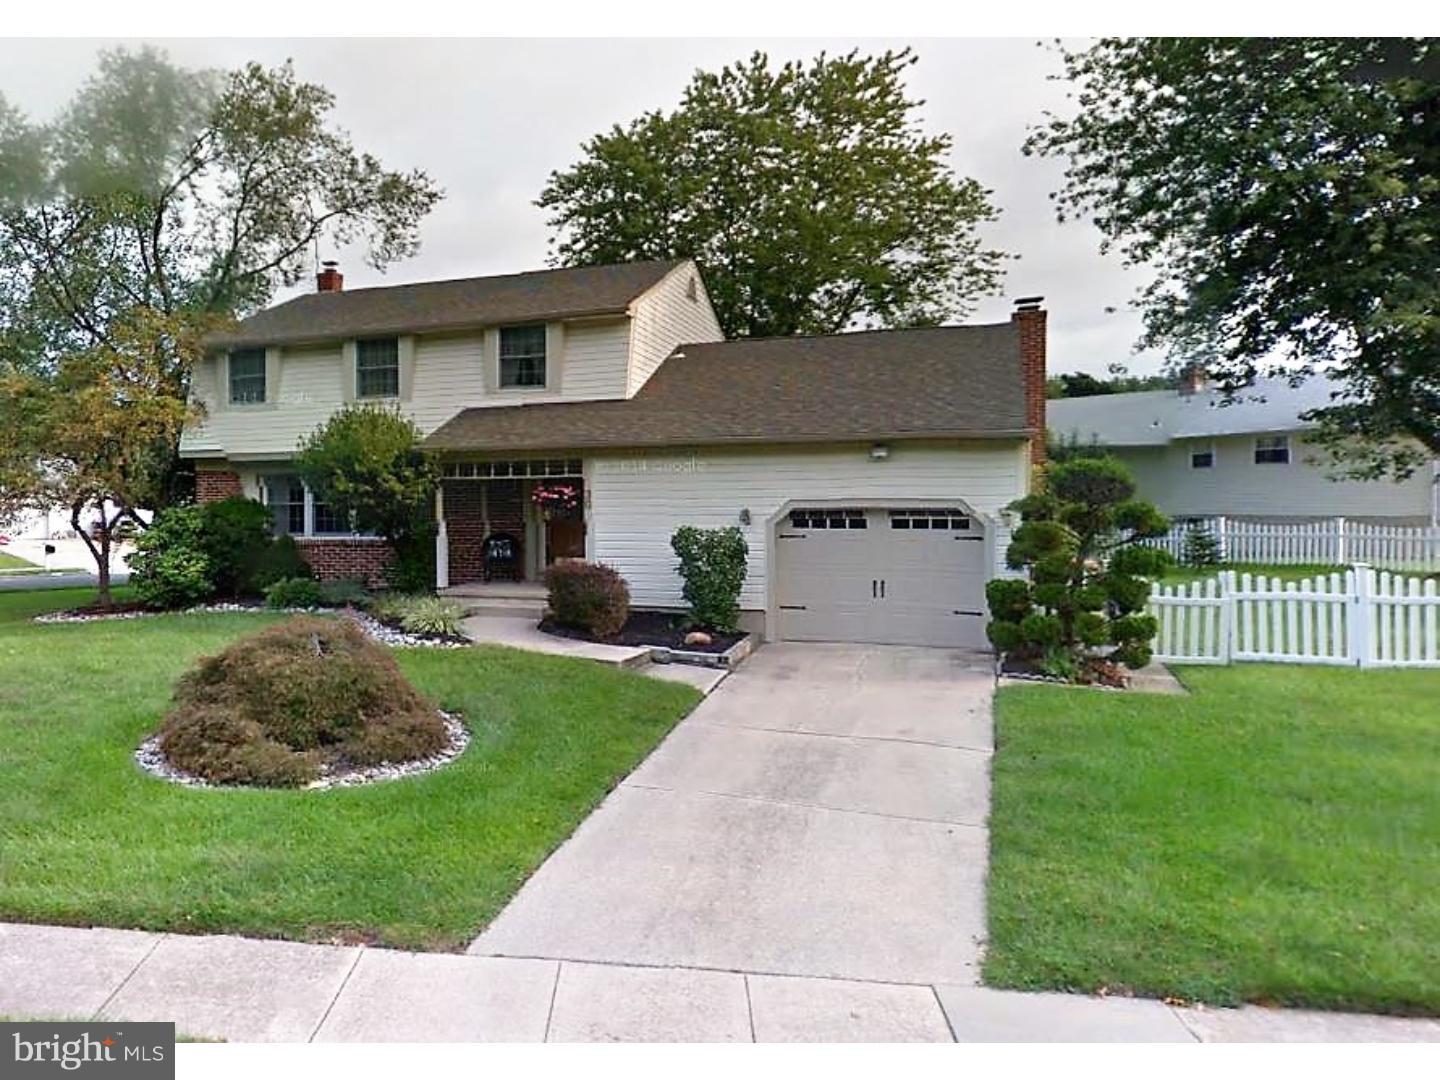 Single Family Home for Sale at 30 MILLBRIDGE Road Clementon, New Jersey 08021 United States